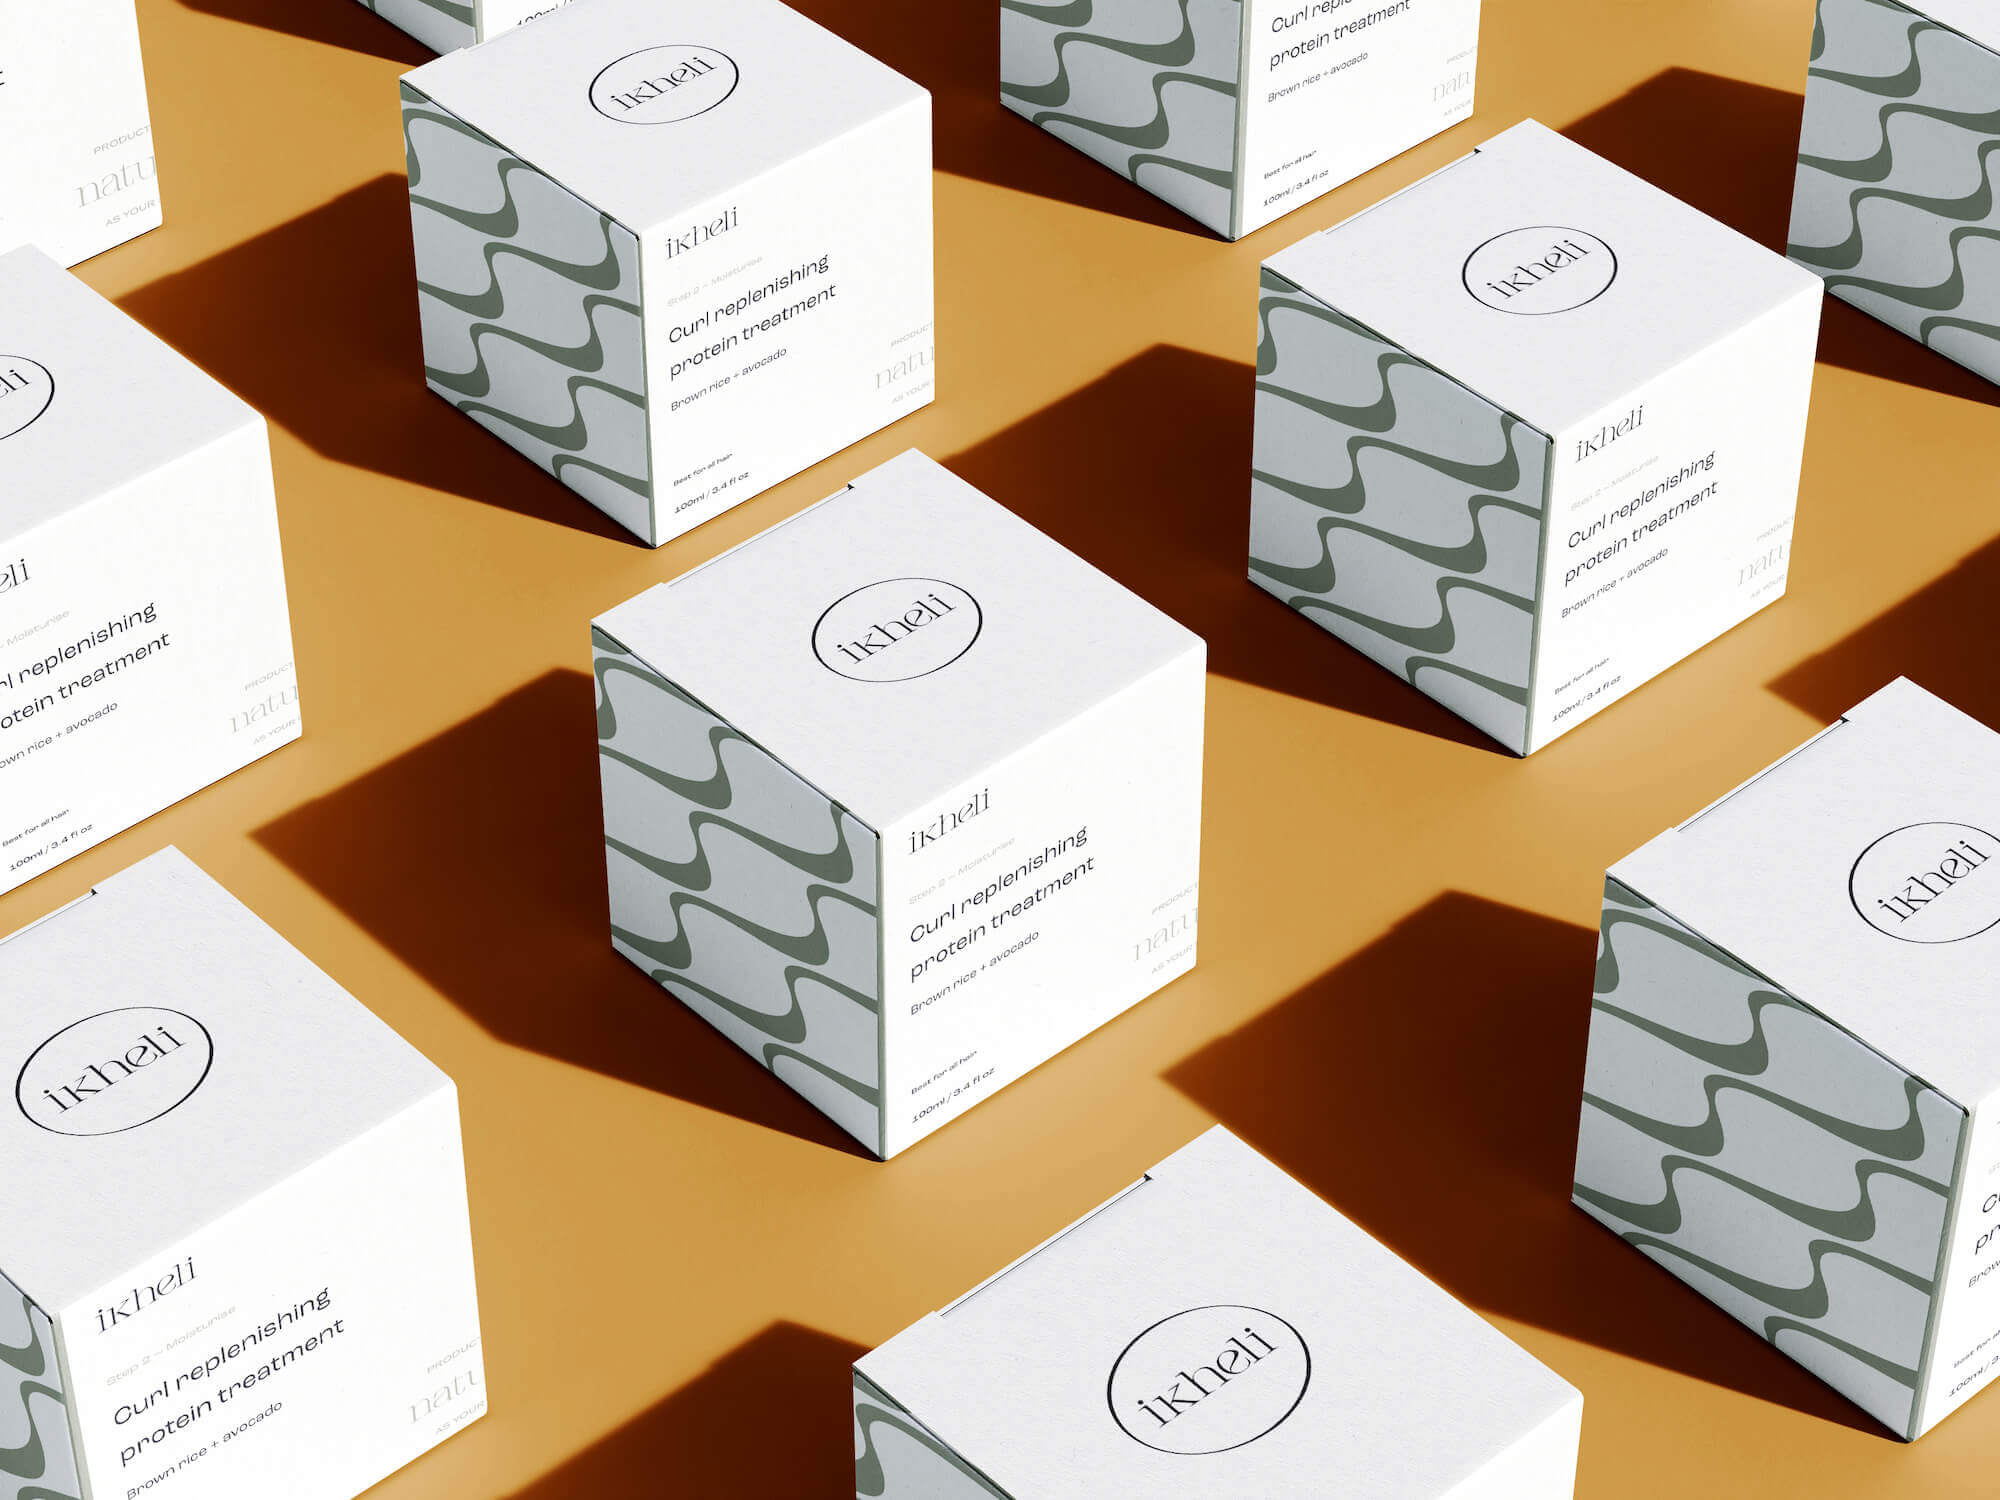 Product packaging use case for nature-inspired colour palette for small creative businesses